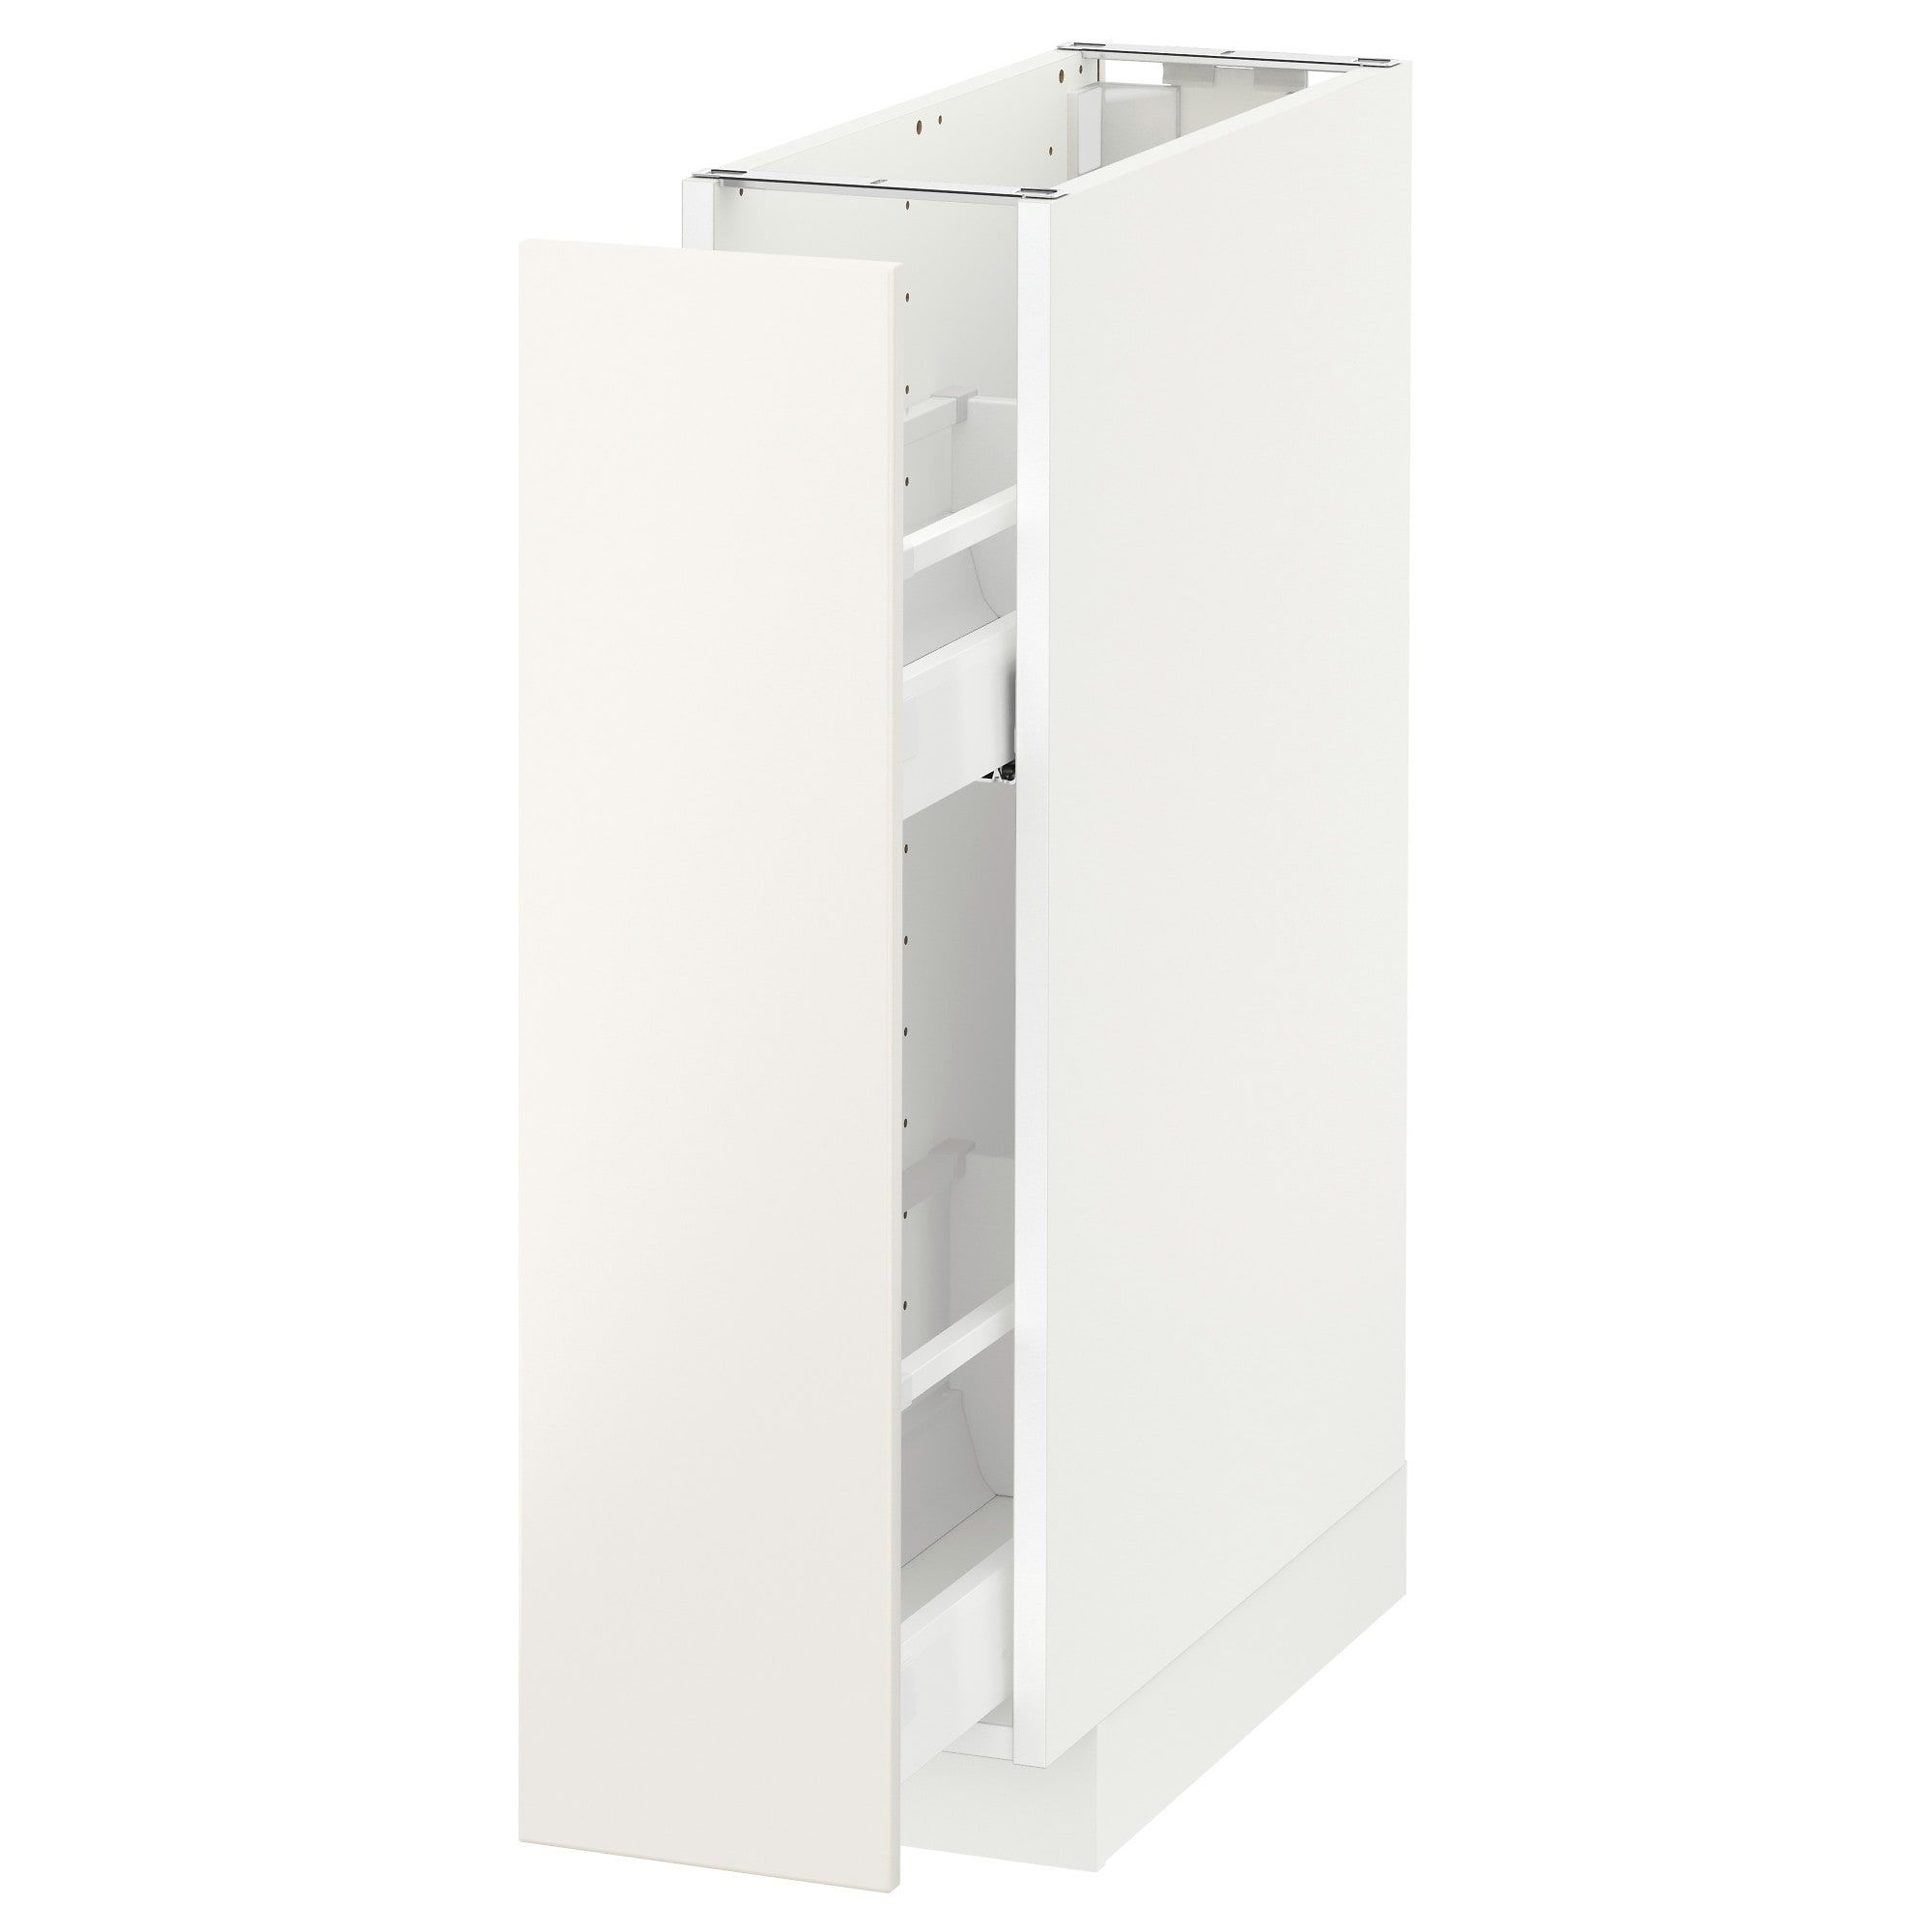 Ikea Apothekerschrank Küche Metod Wall Cabinet With Shelves White Askersund Light Ash Effect